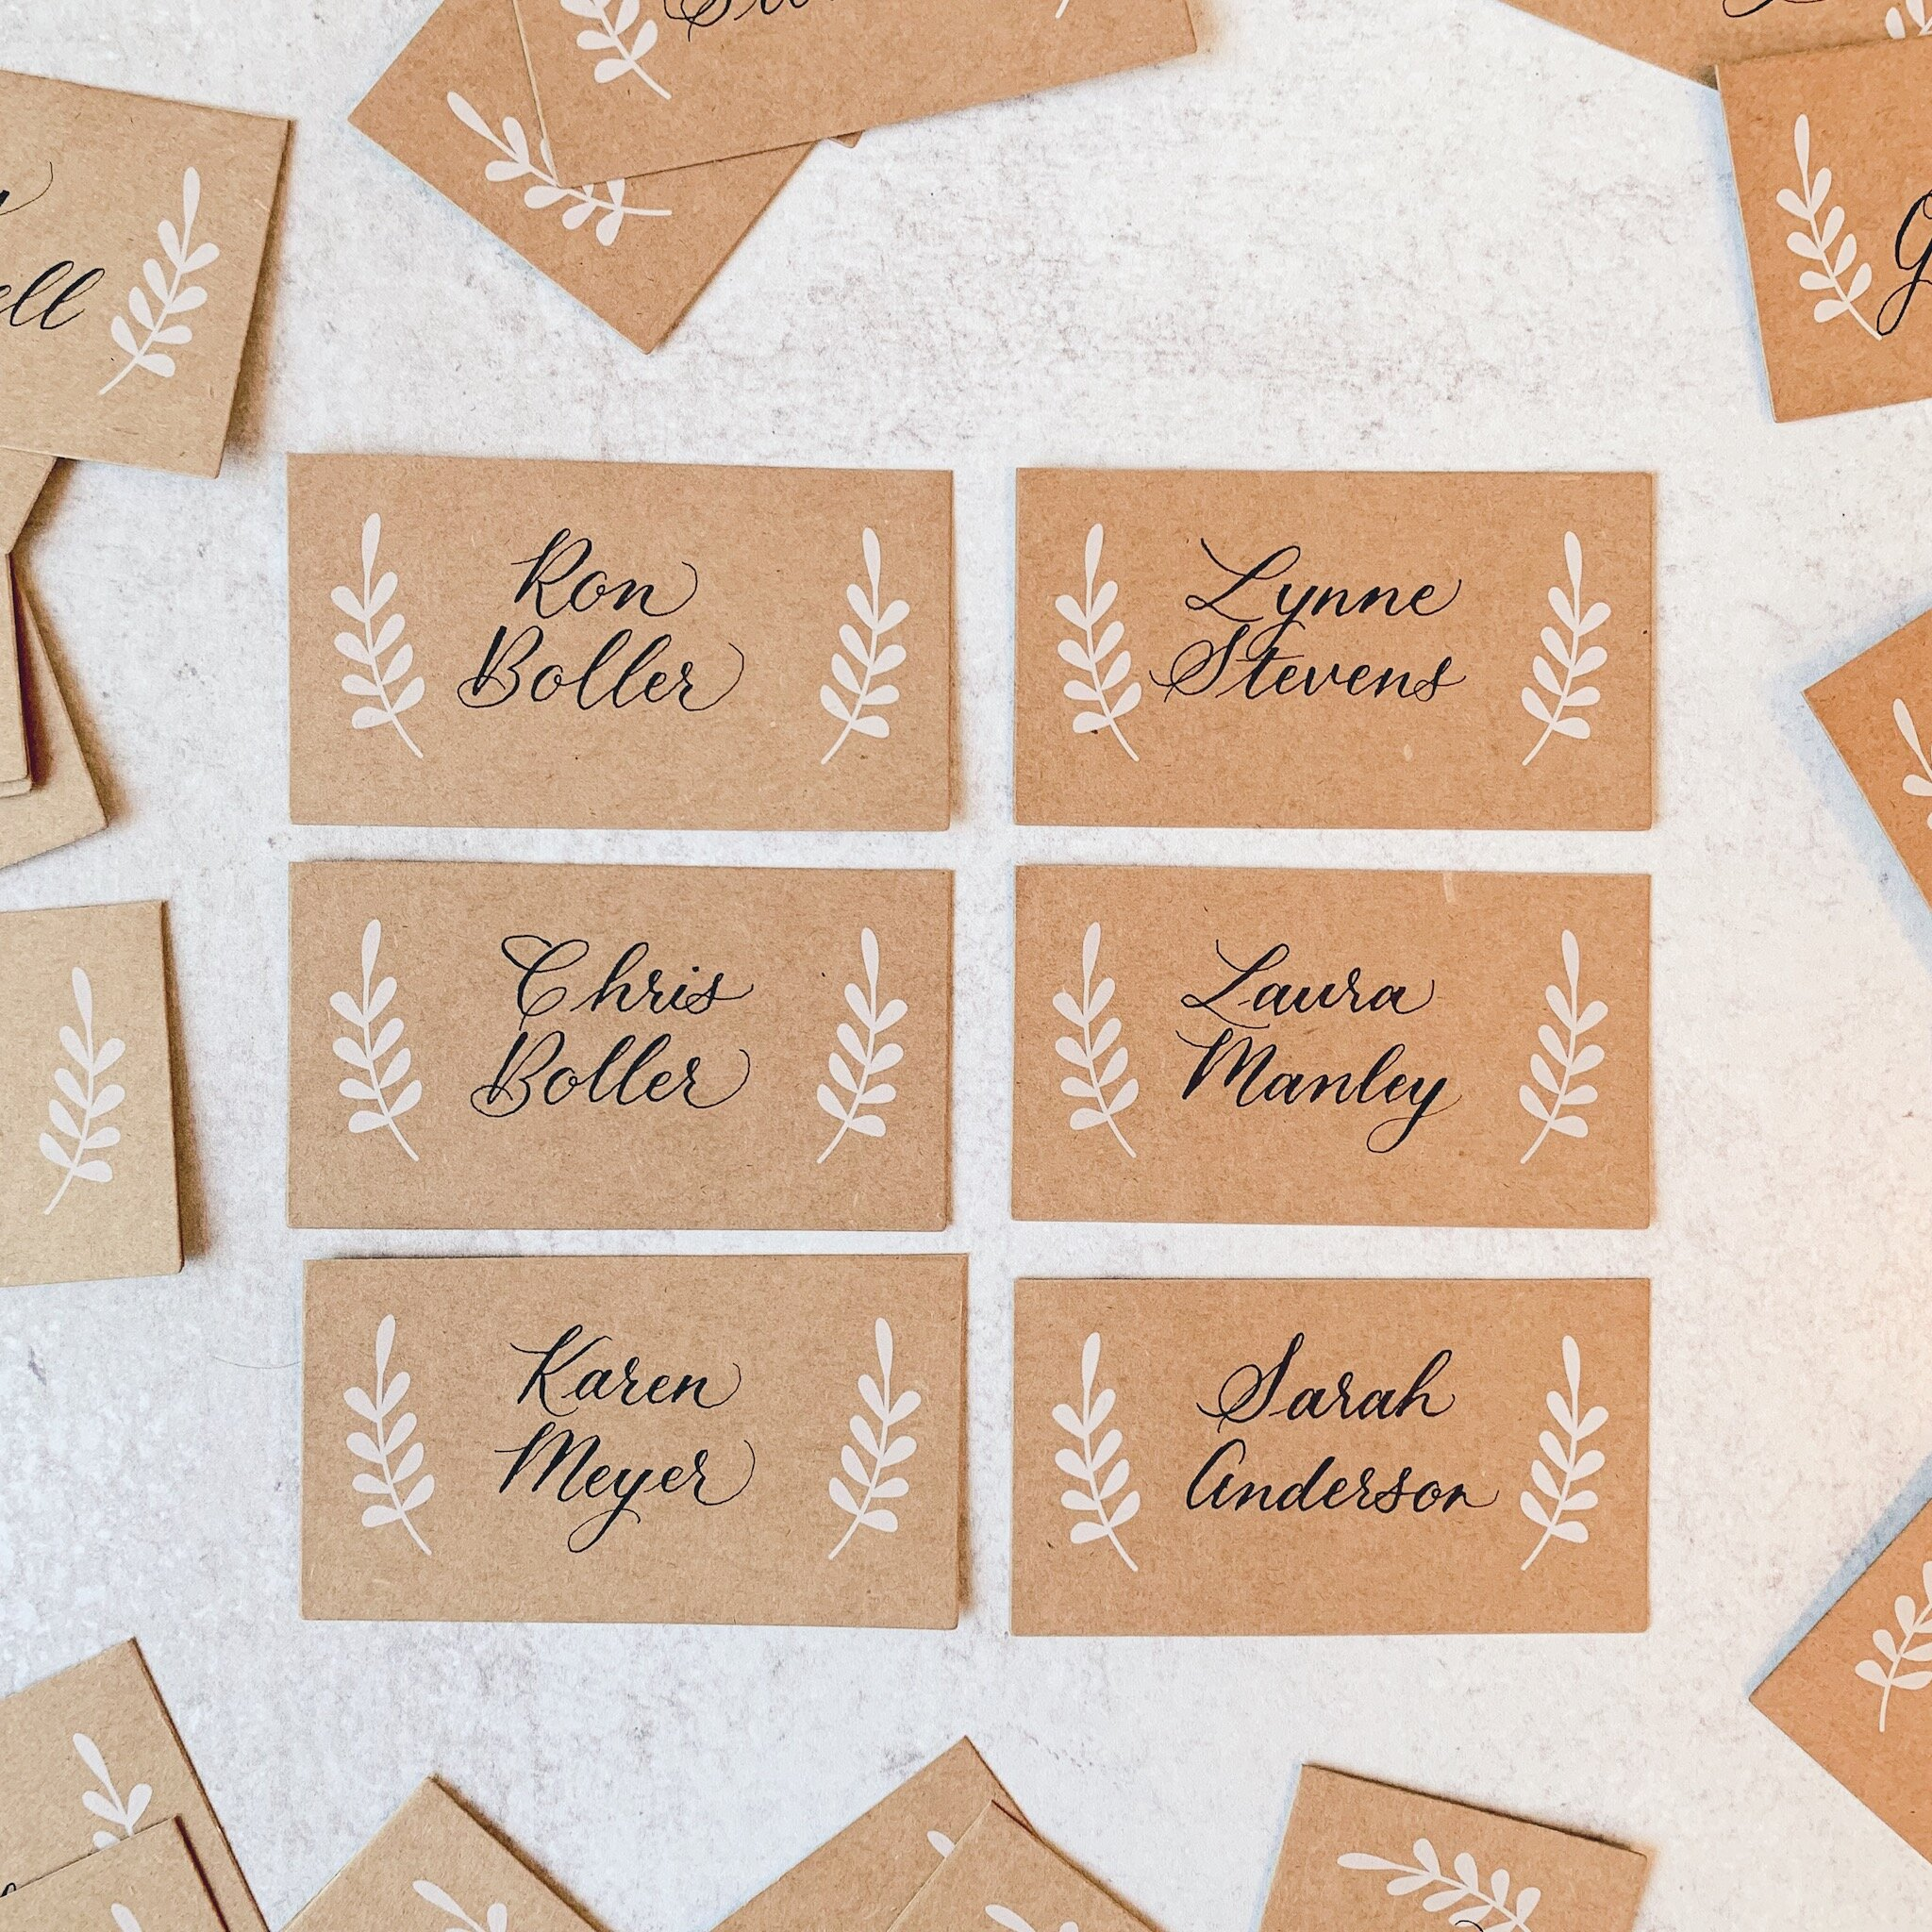 Place cards on craft brown paper with Copperplate calligraphy (Caroline style).